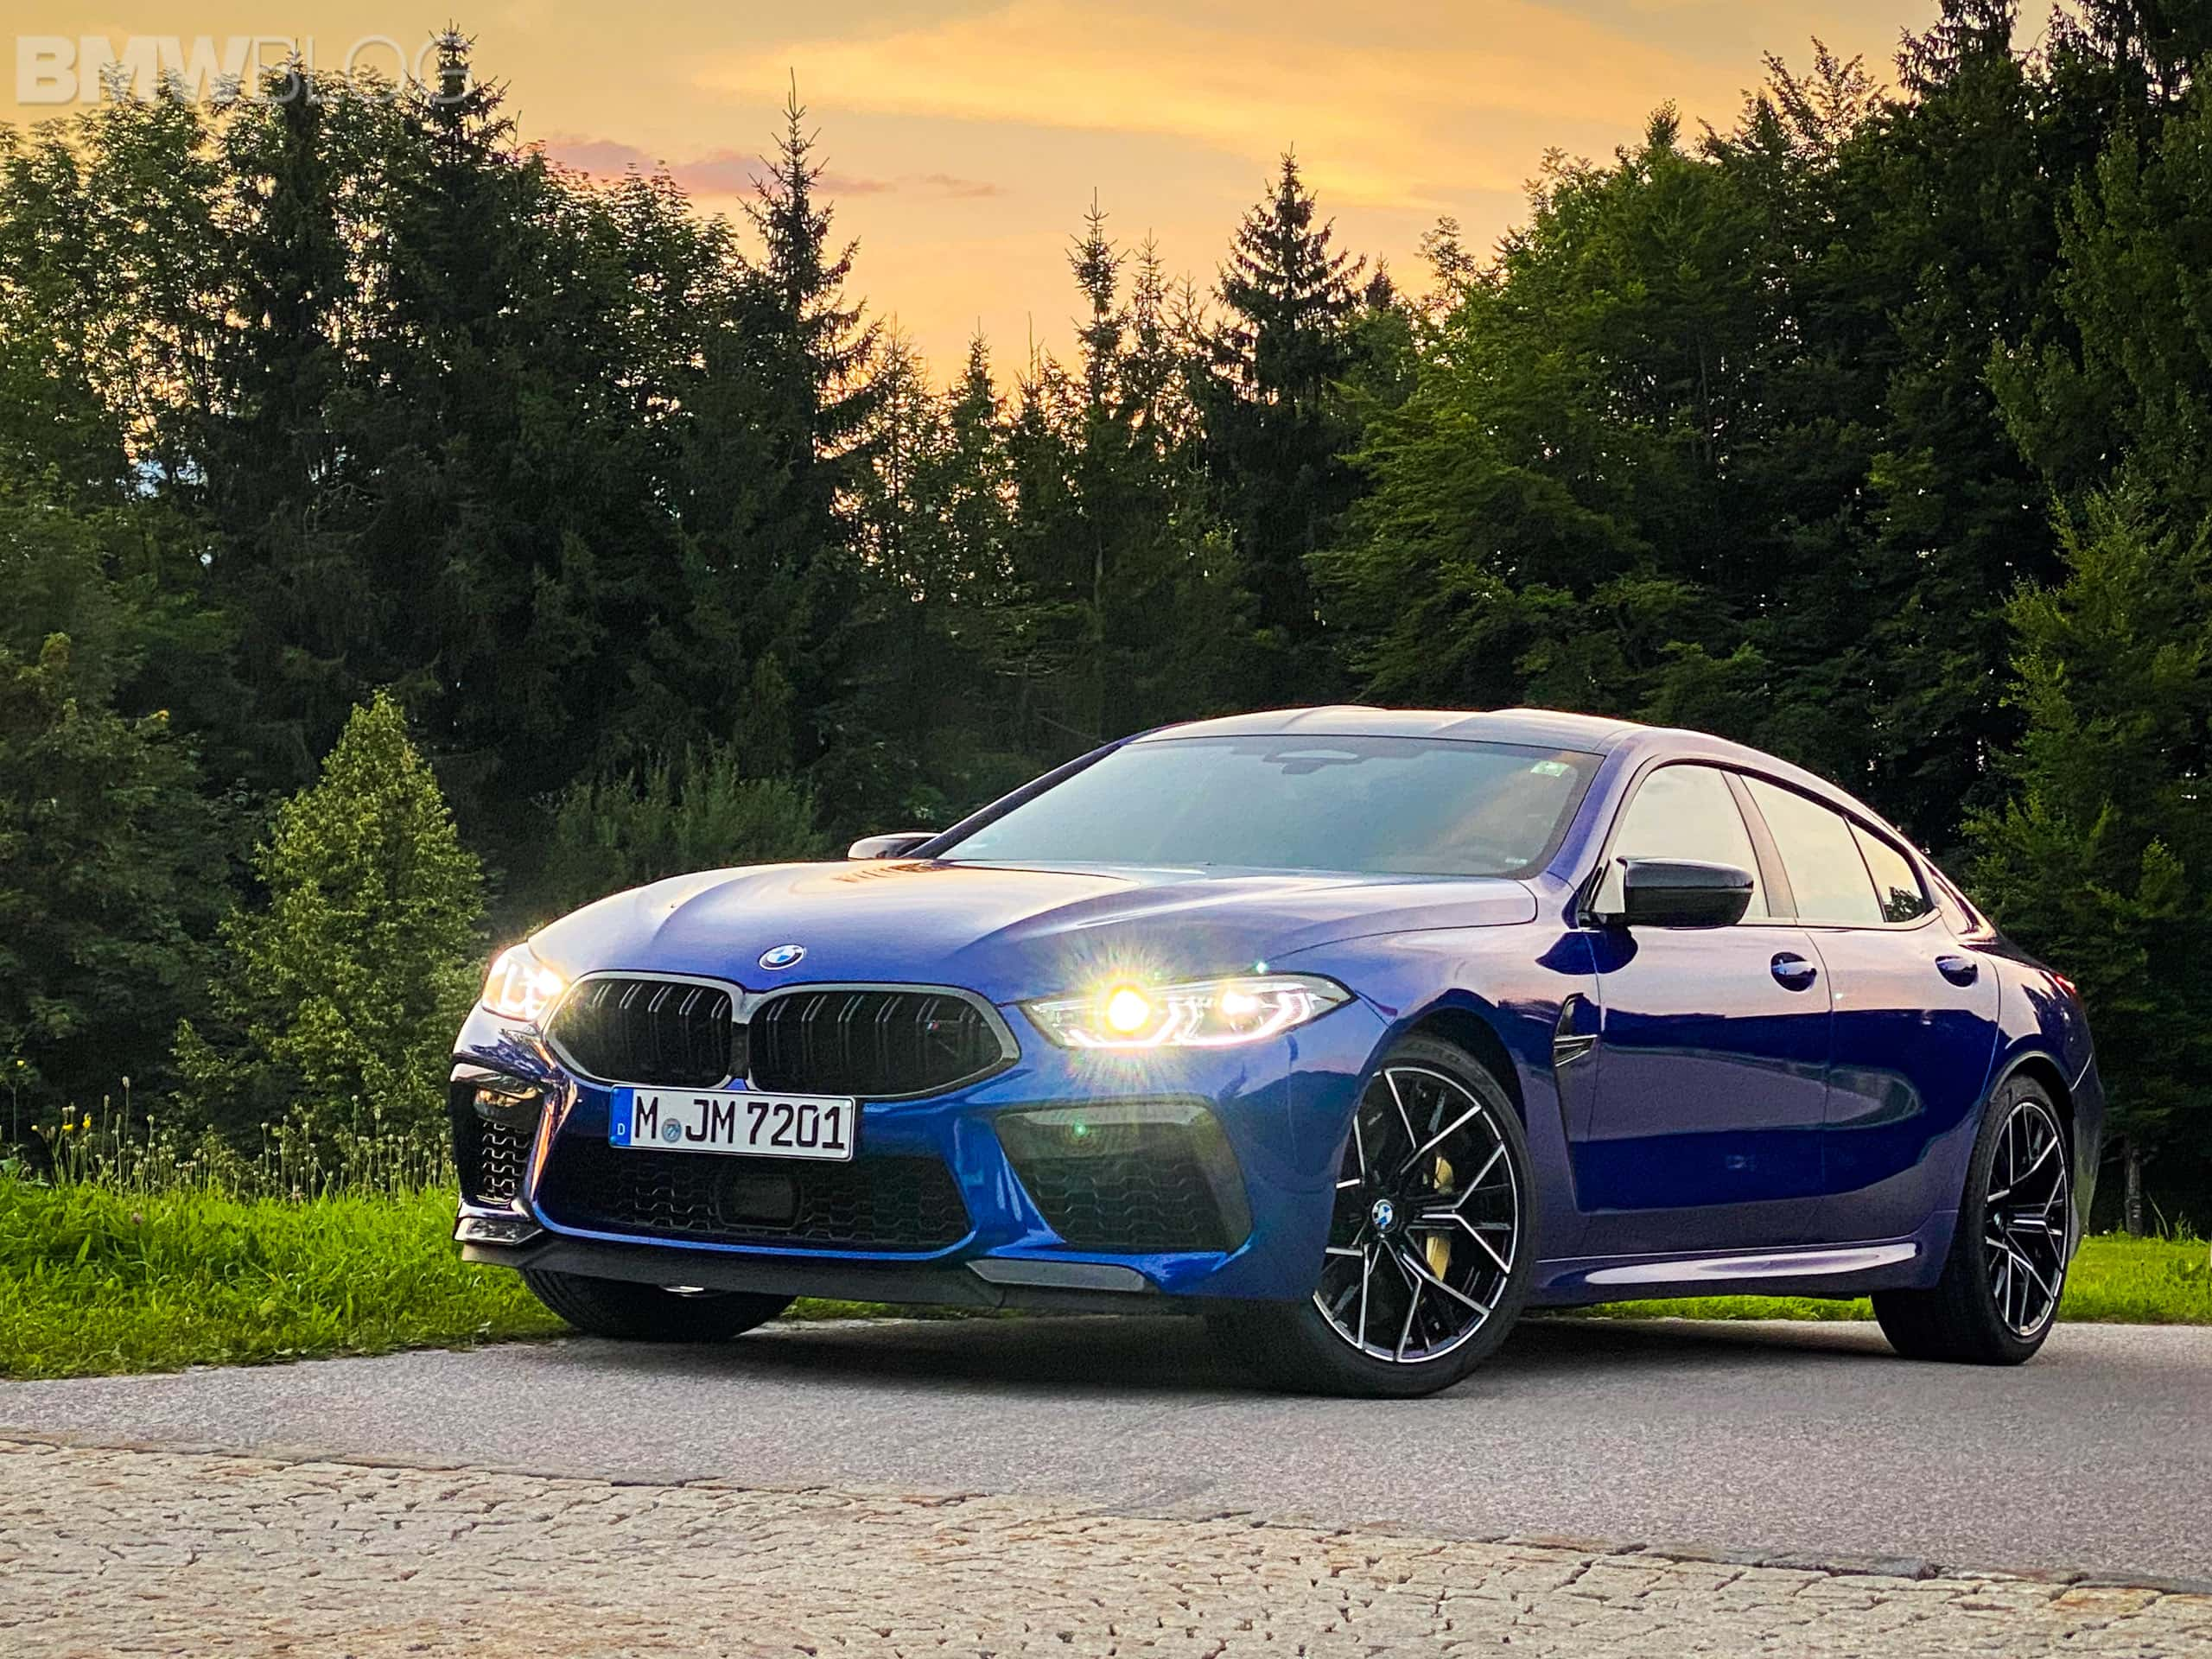 TEST DRIVE: 2022 BMW M8 Competition Gran Coupe – Power, Poise and Beauty